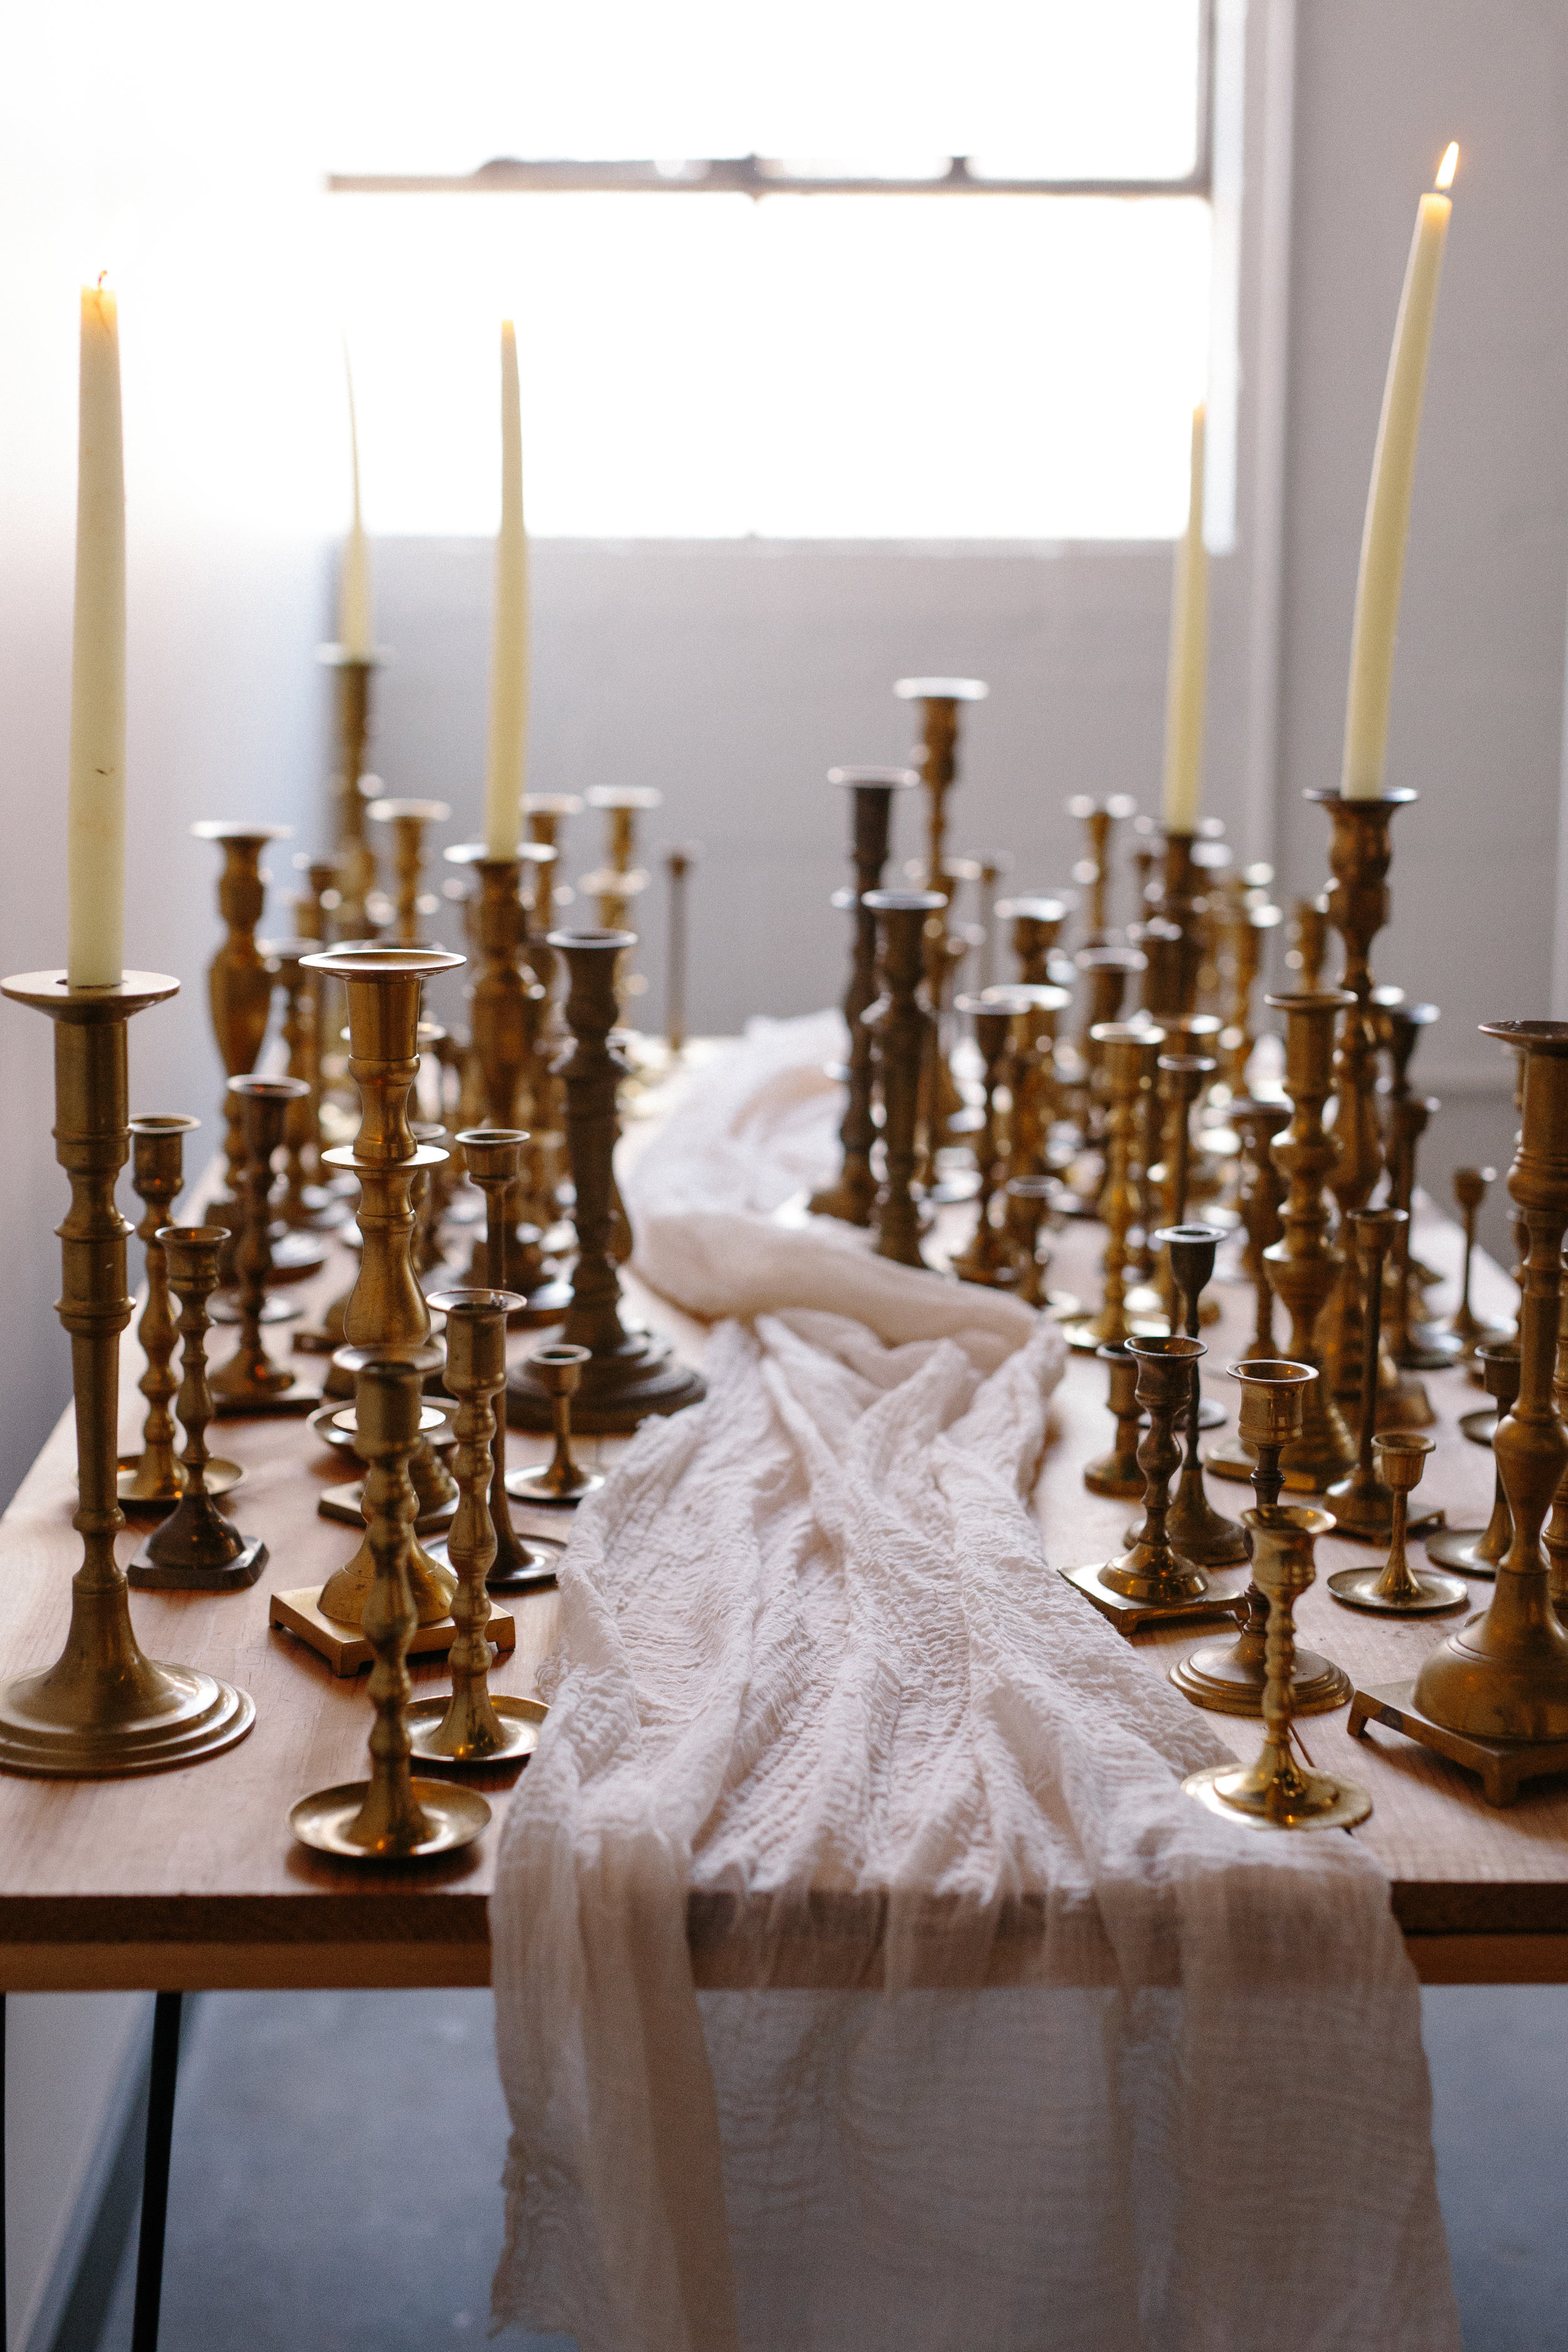 BRASS CANDLESTICK HOLDERS // $1 EACH  We do offer a cleaning service for wax residue at an additional charge of $1 per candlestick  100+ available